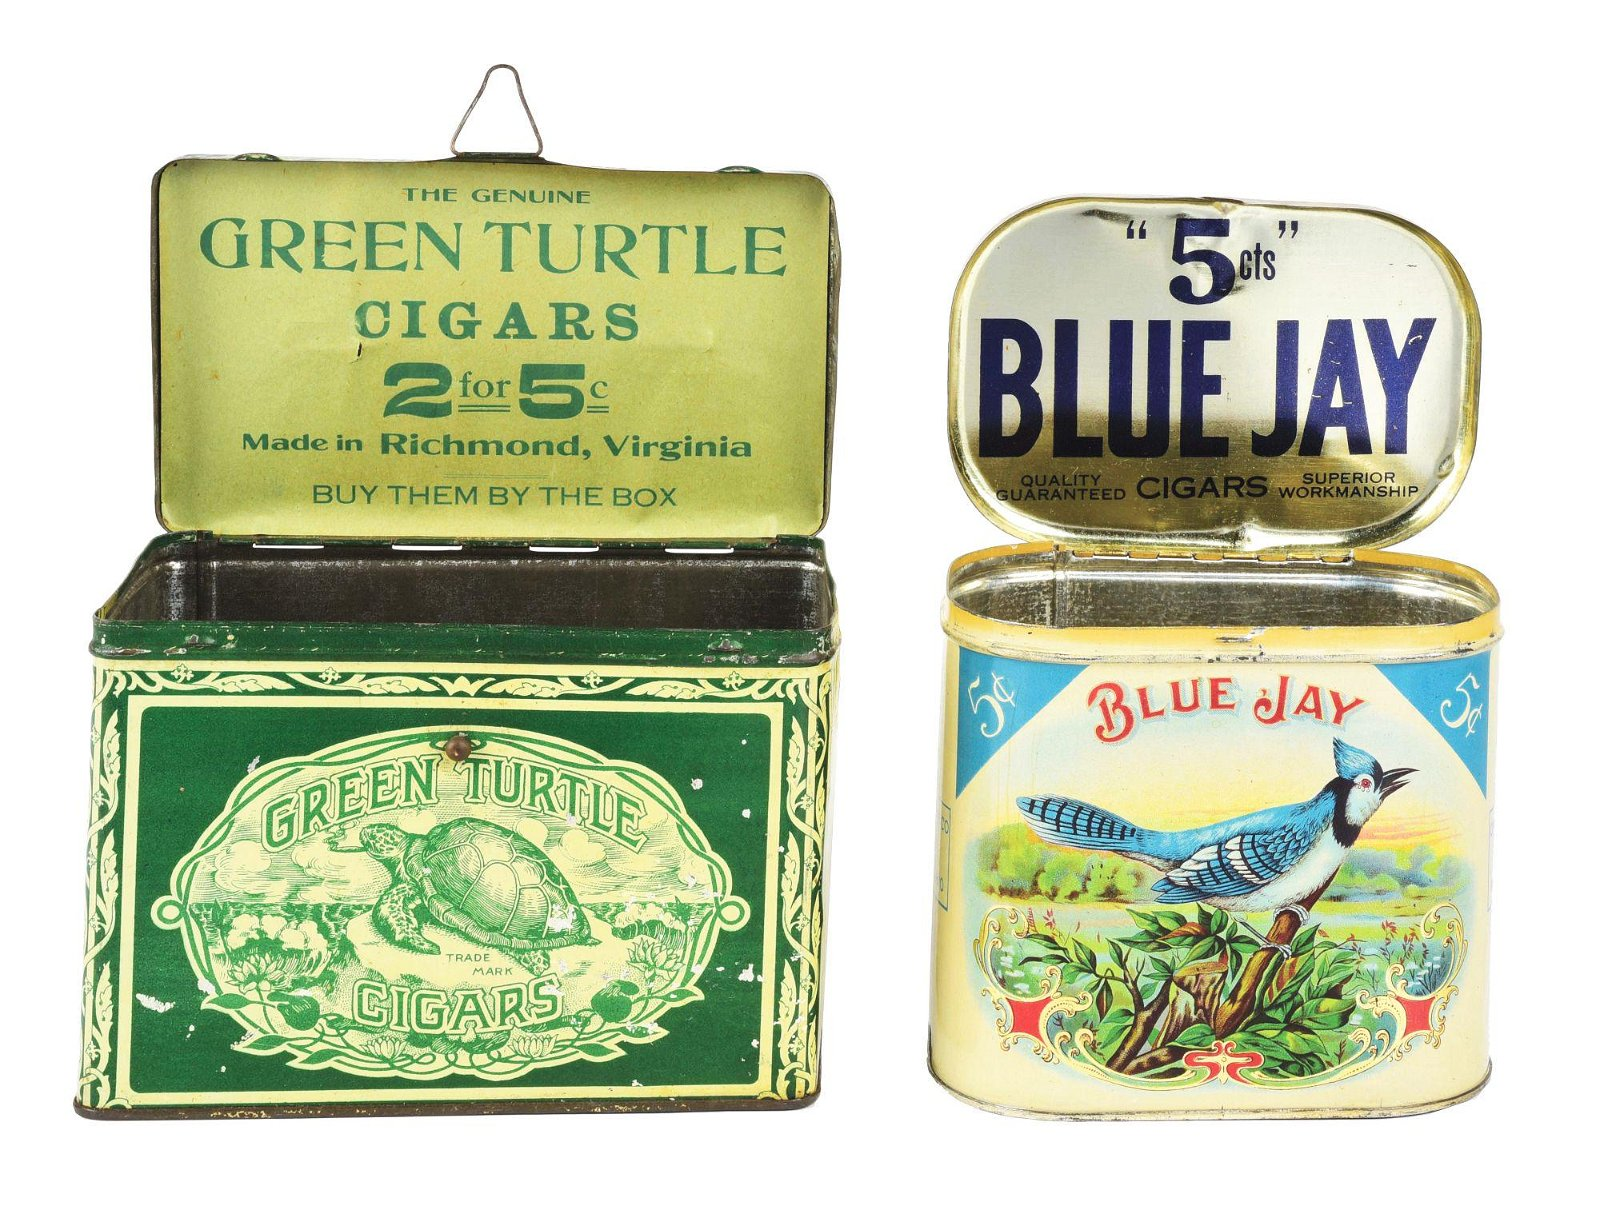 LOT OF 2: GREEN TURTLE AND BLUE JAY CIGAR TINS.